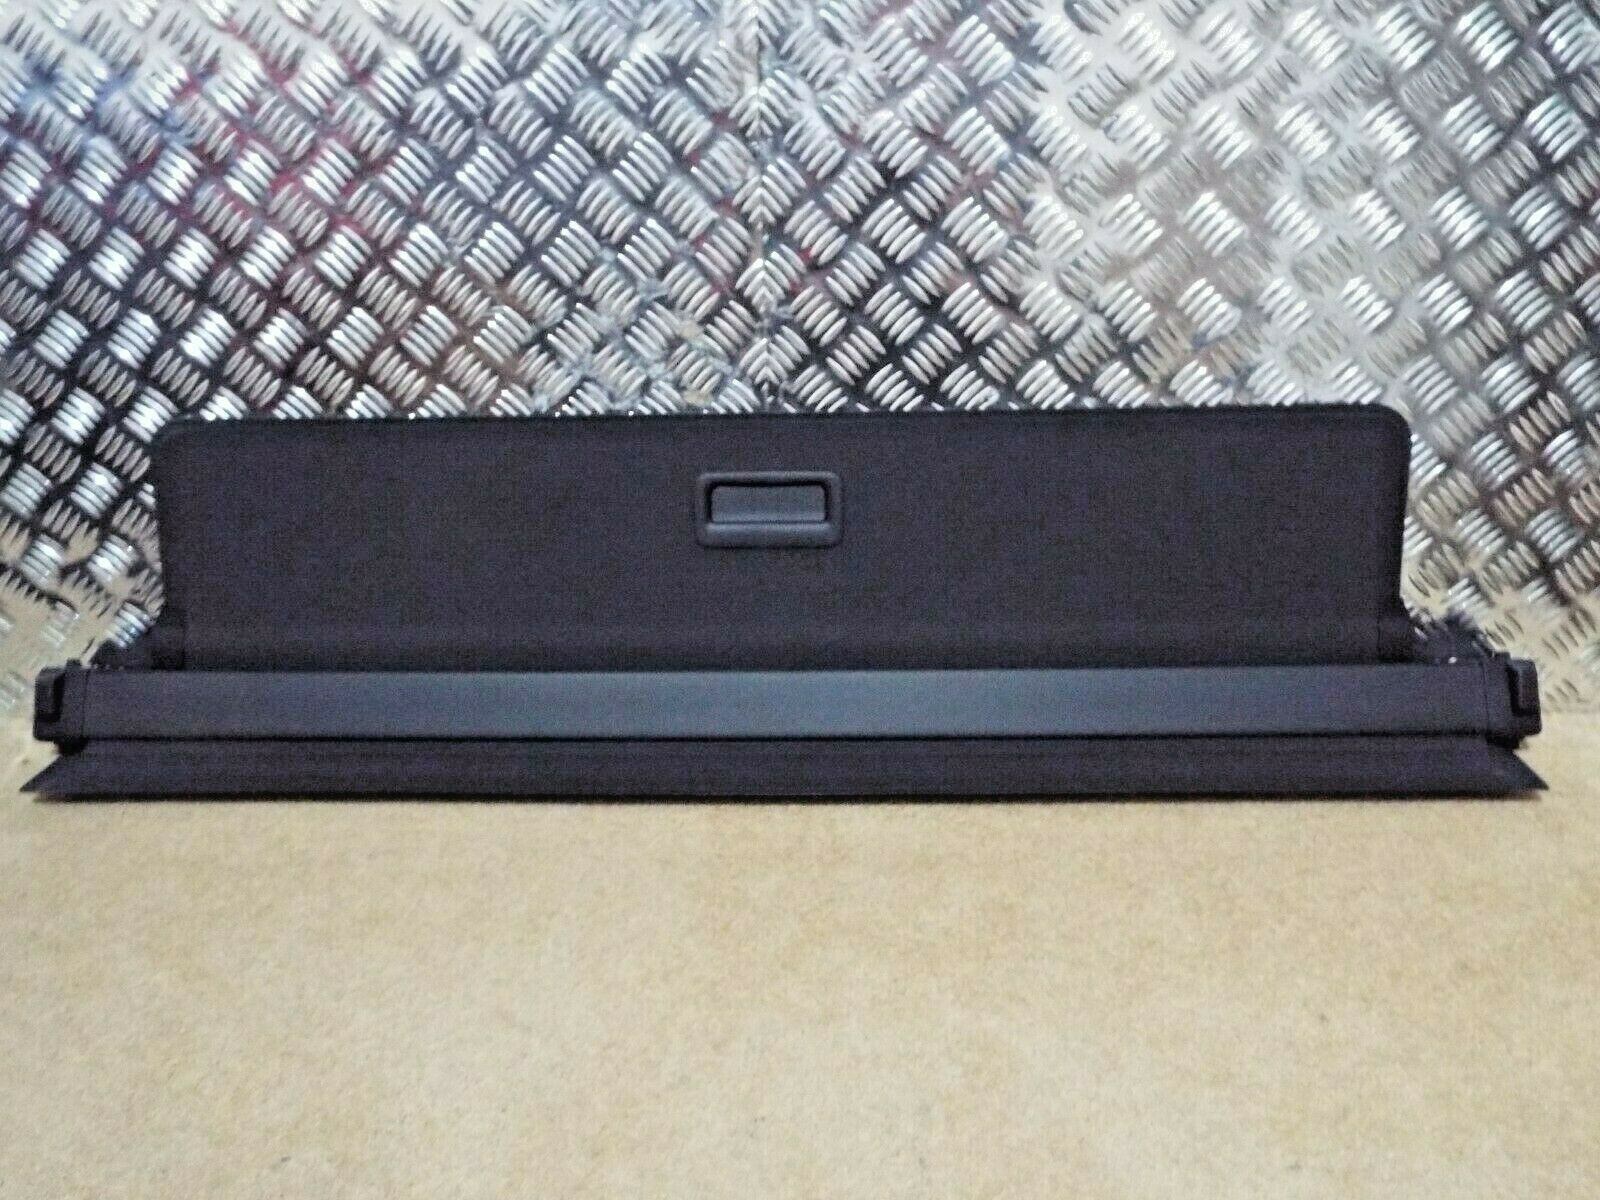 GENUINE VAUXHALL CORSA D 3 DOOR HATCHBACK  PARCEL SHELF COVER 13233538 13180951